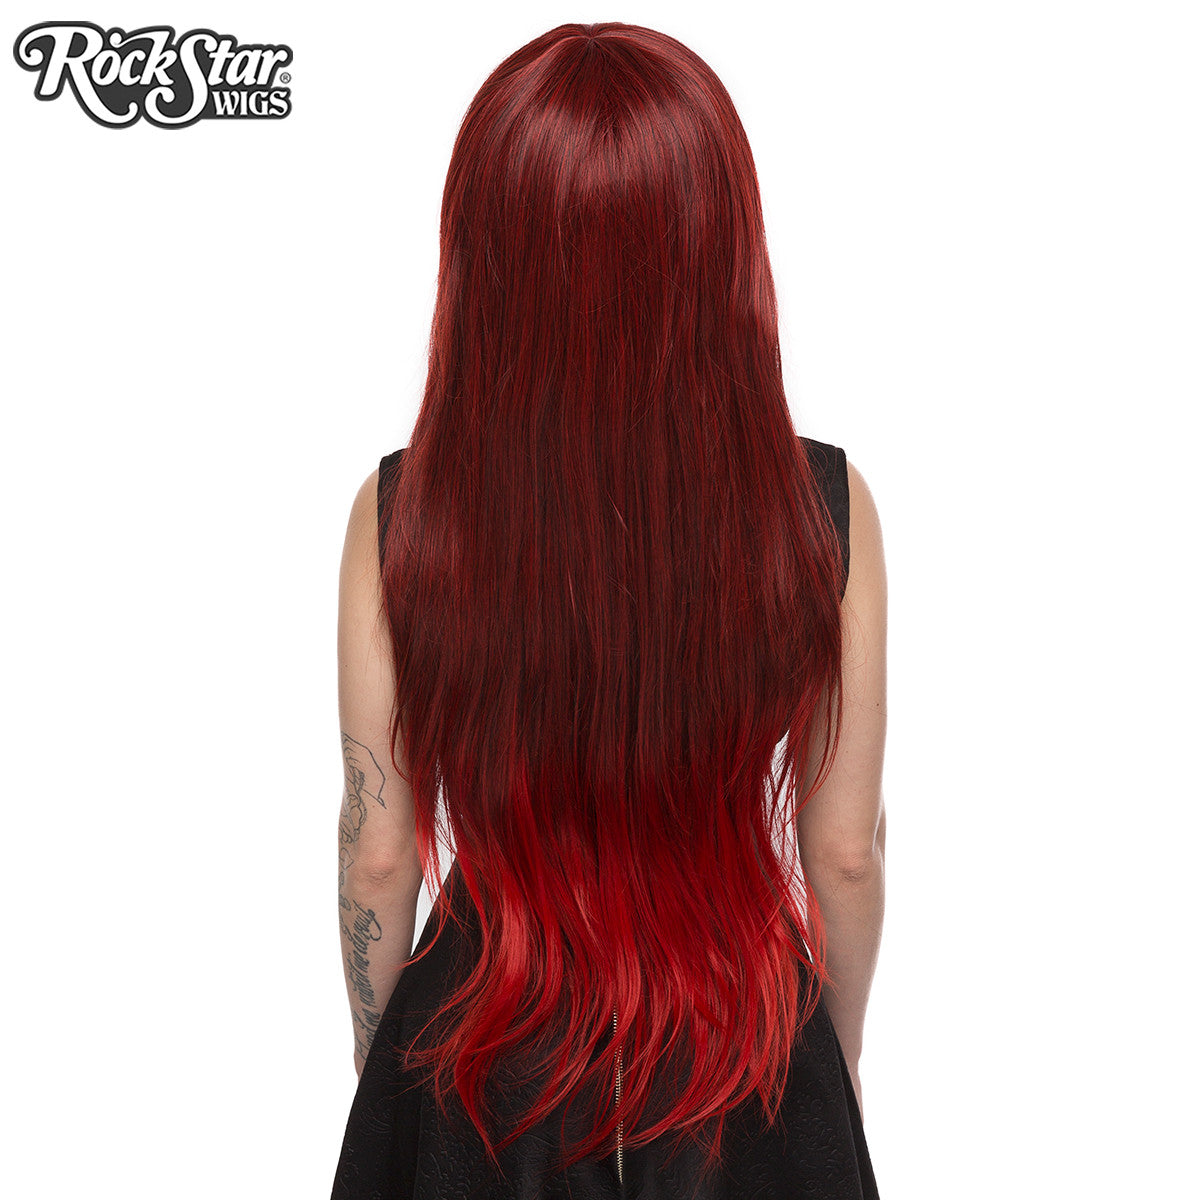 RockStar Wigs® <br> Ombre Alexa™ Collection - Wine Red Fade -00205